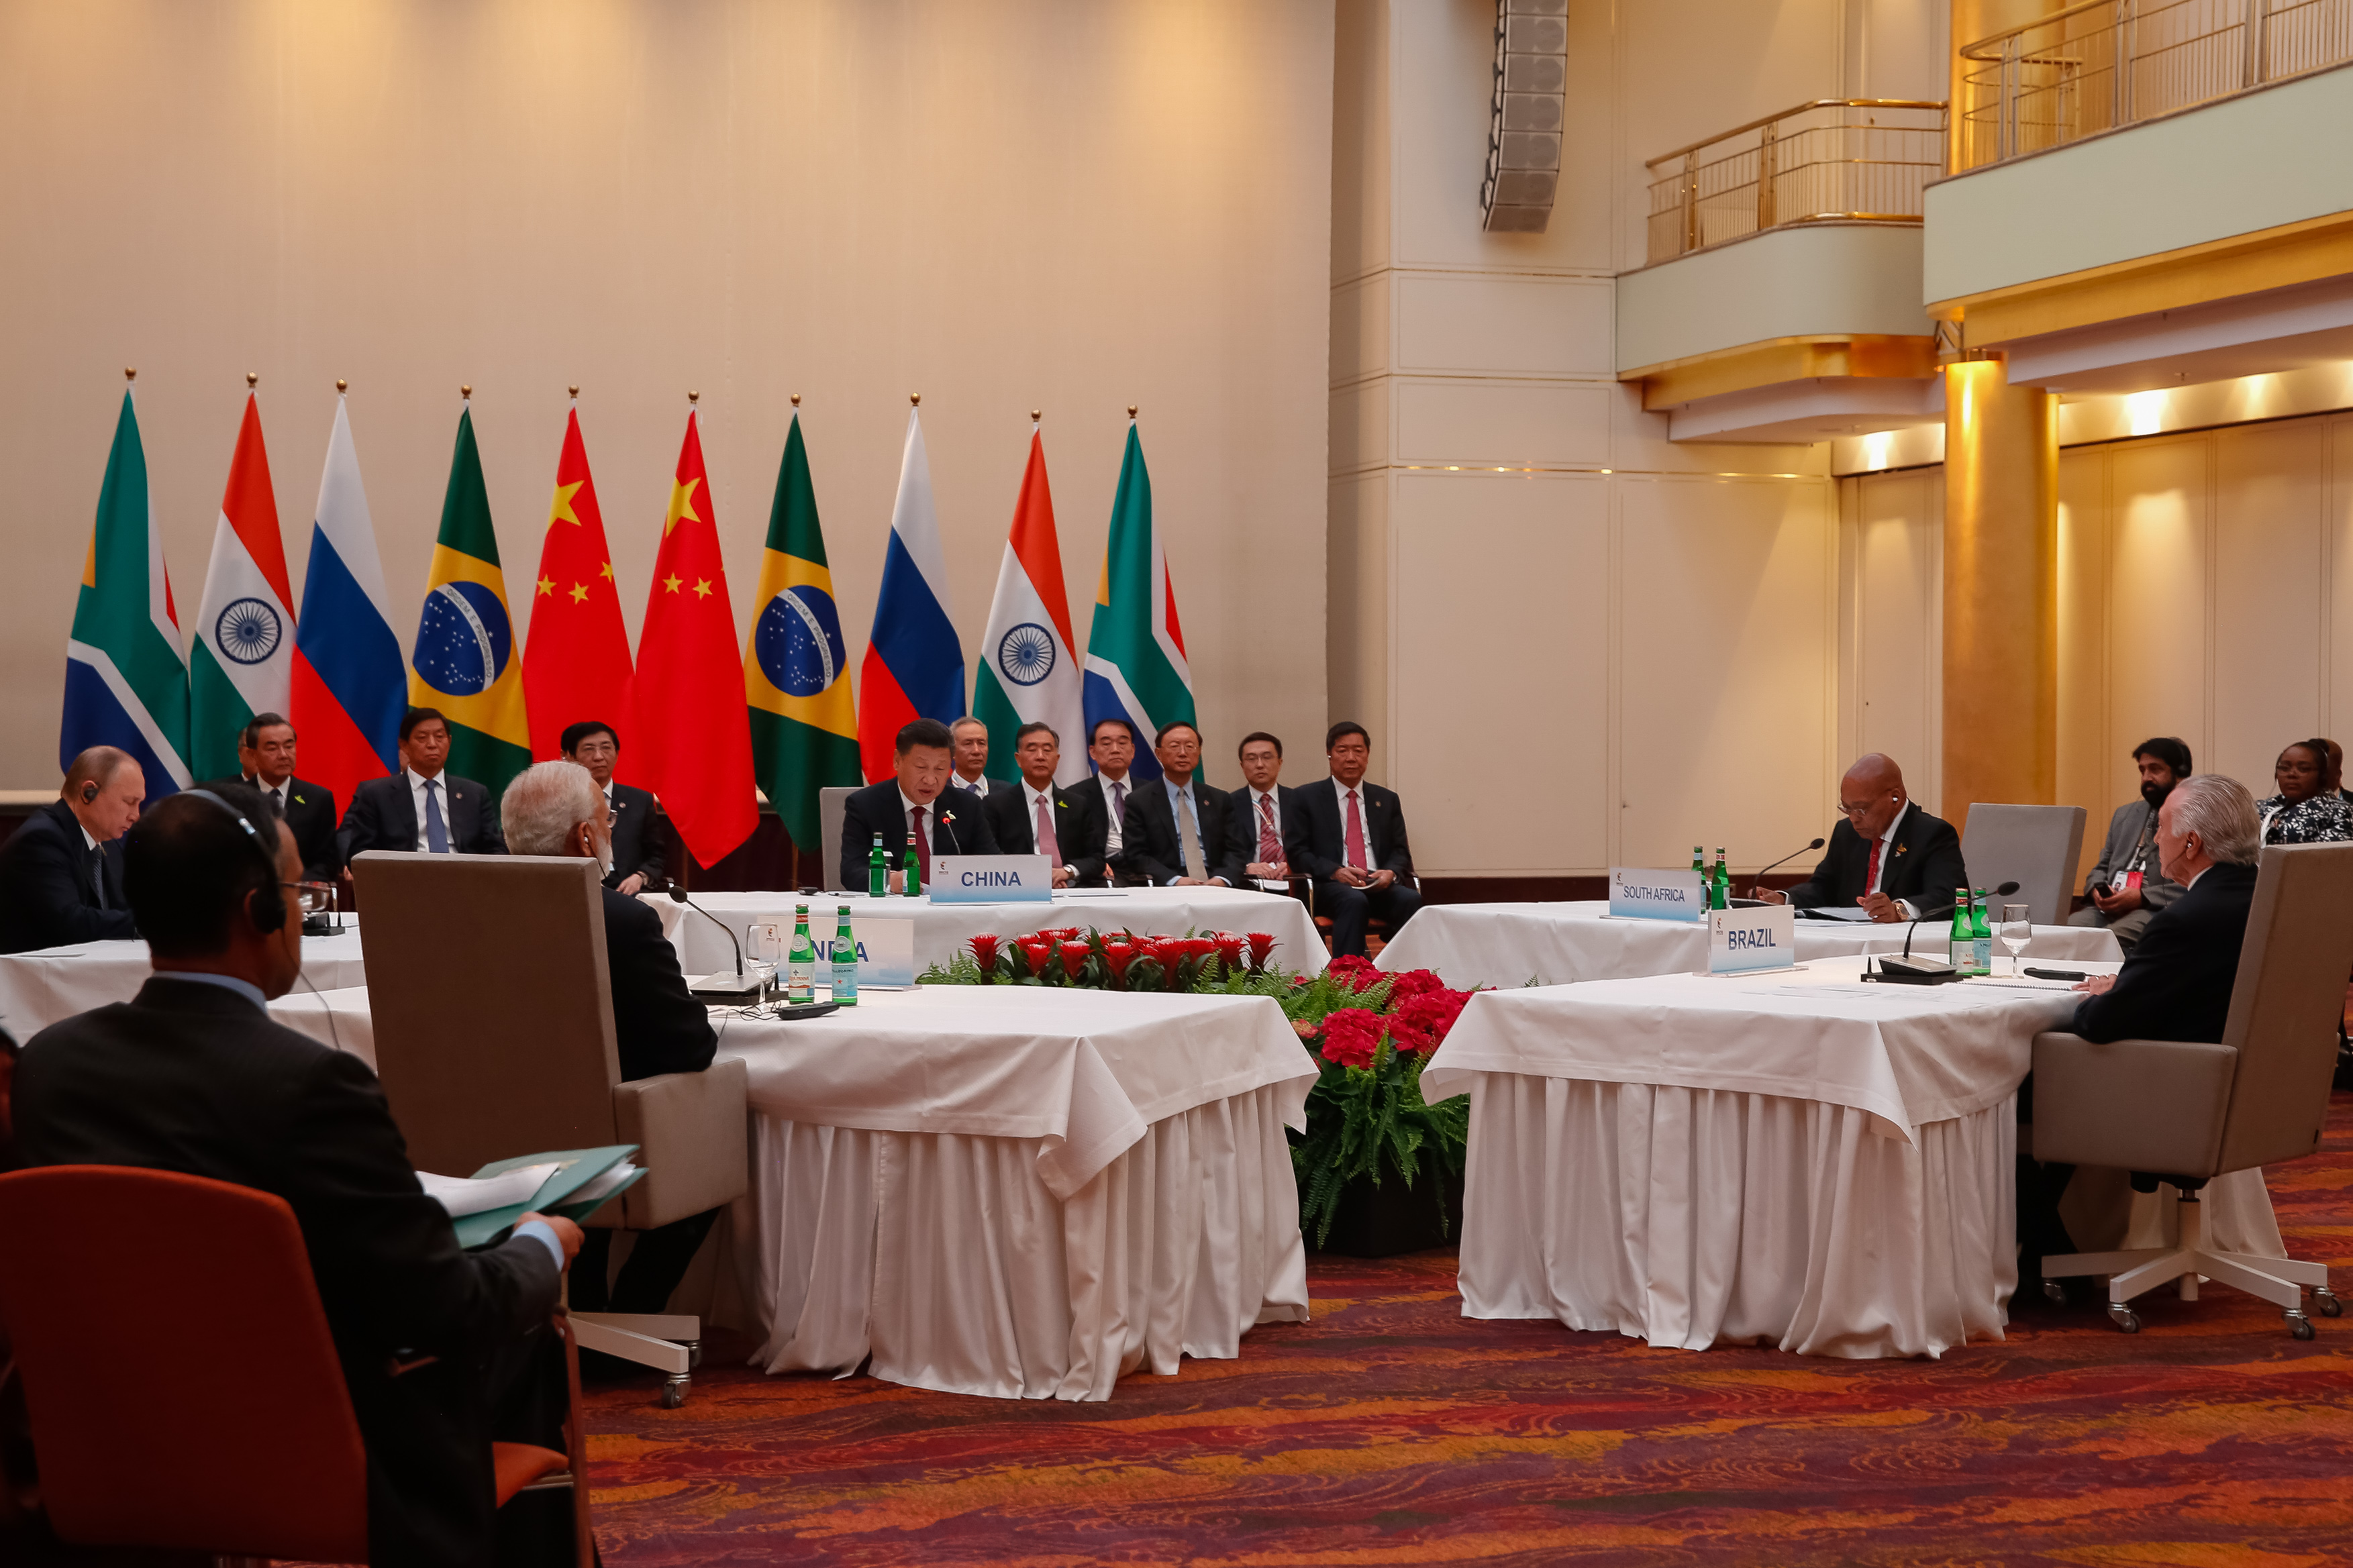 Cabinet approves pacts signed by Exim Bank under BRICS mechanism